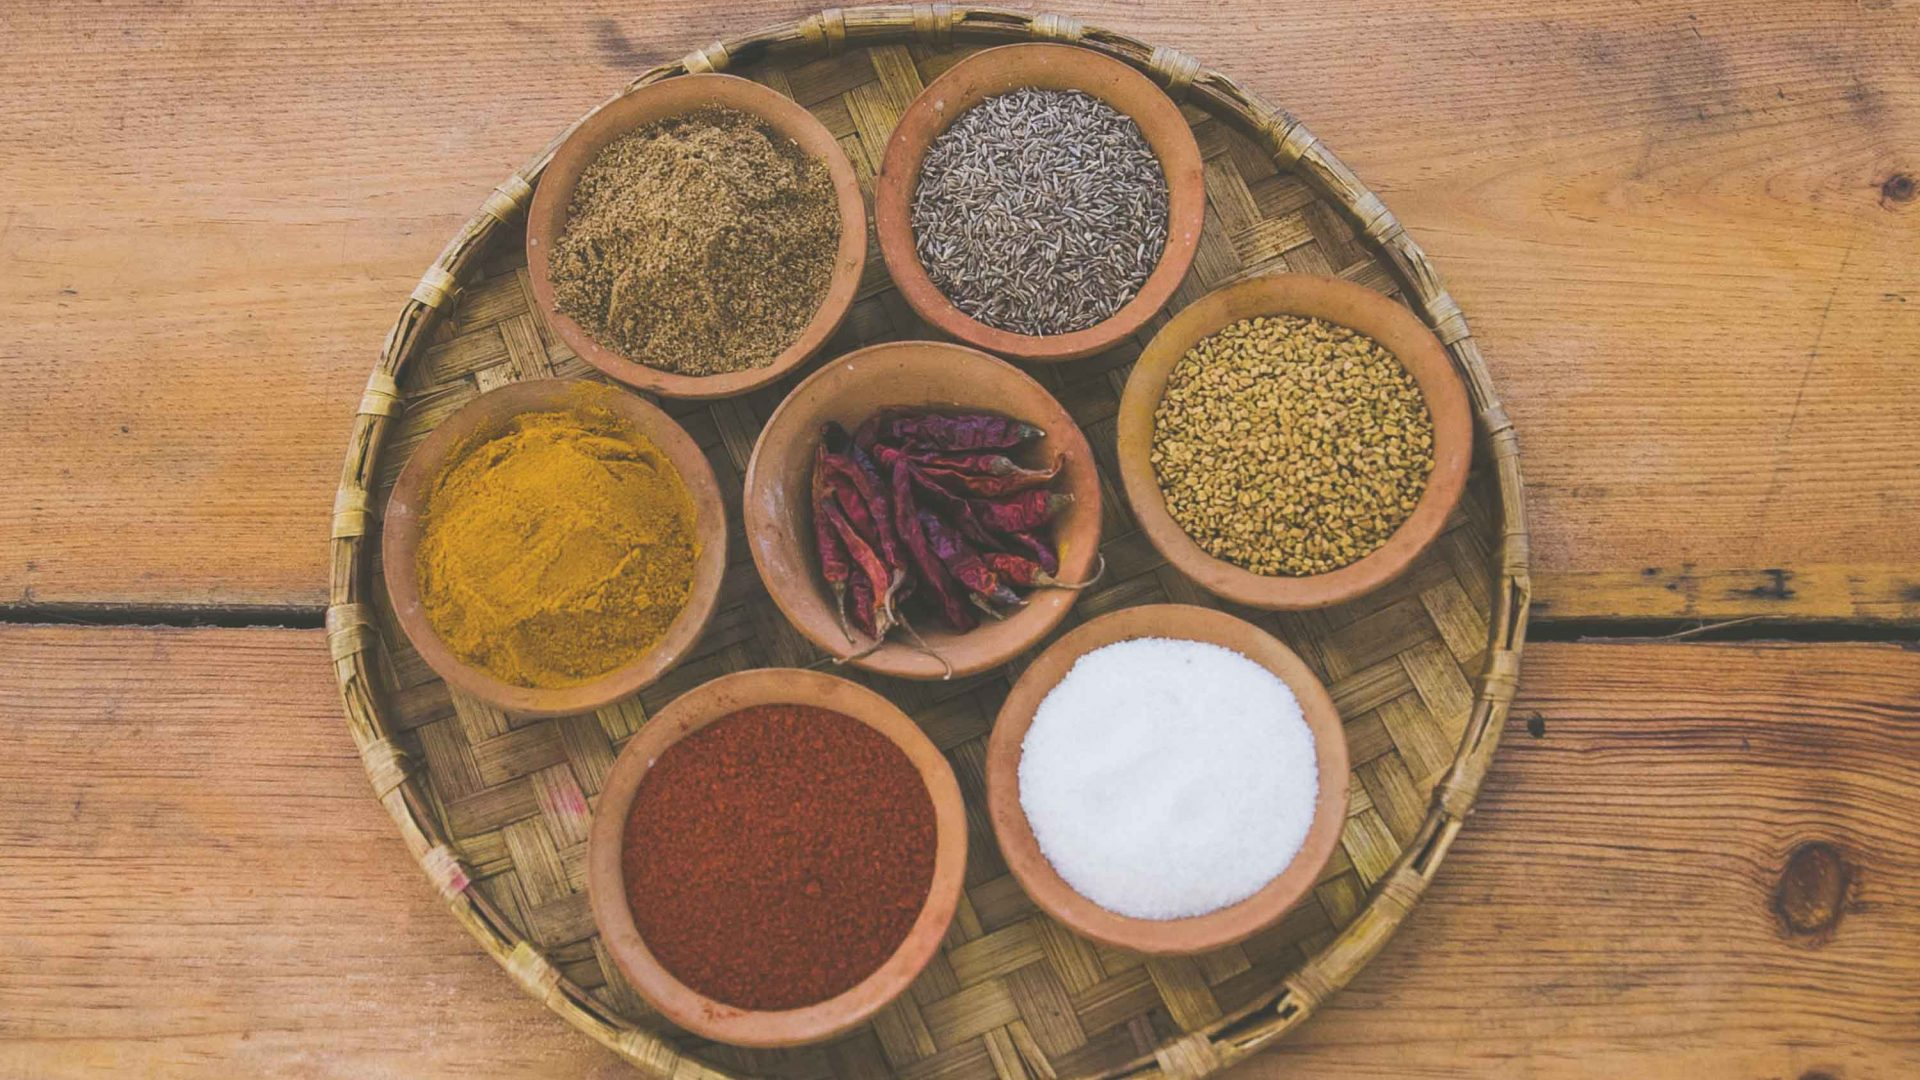 Spices used to prepare meals at the Seven Women social enterprise in Nepal.